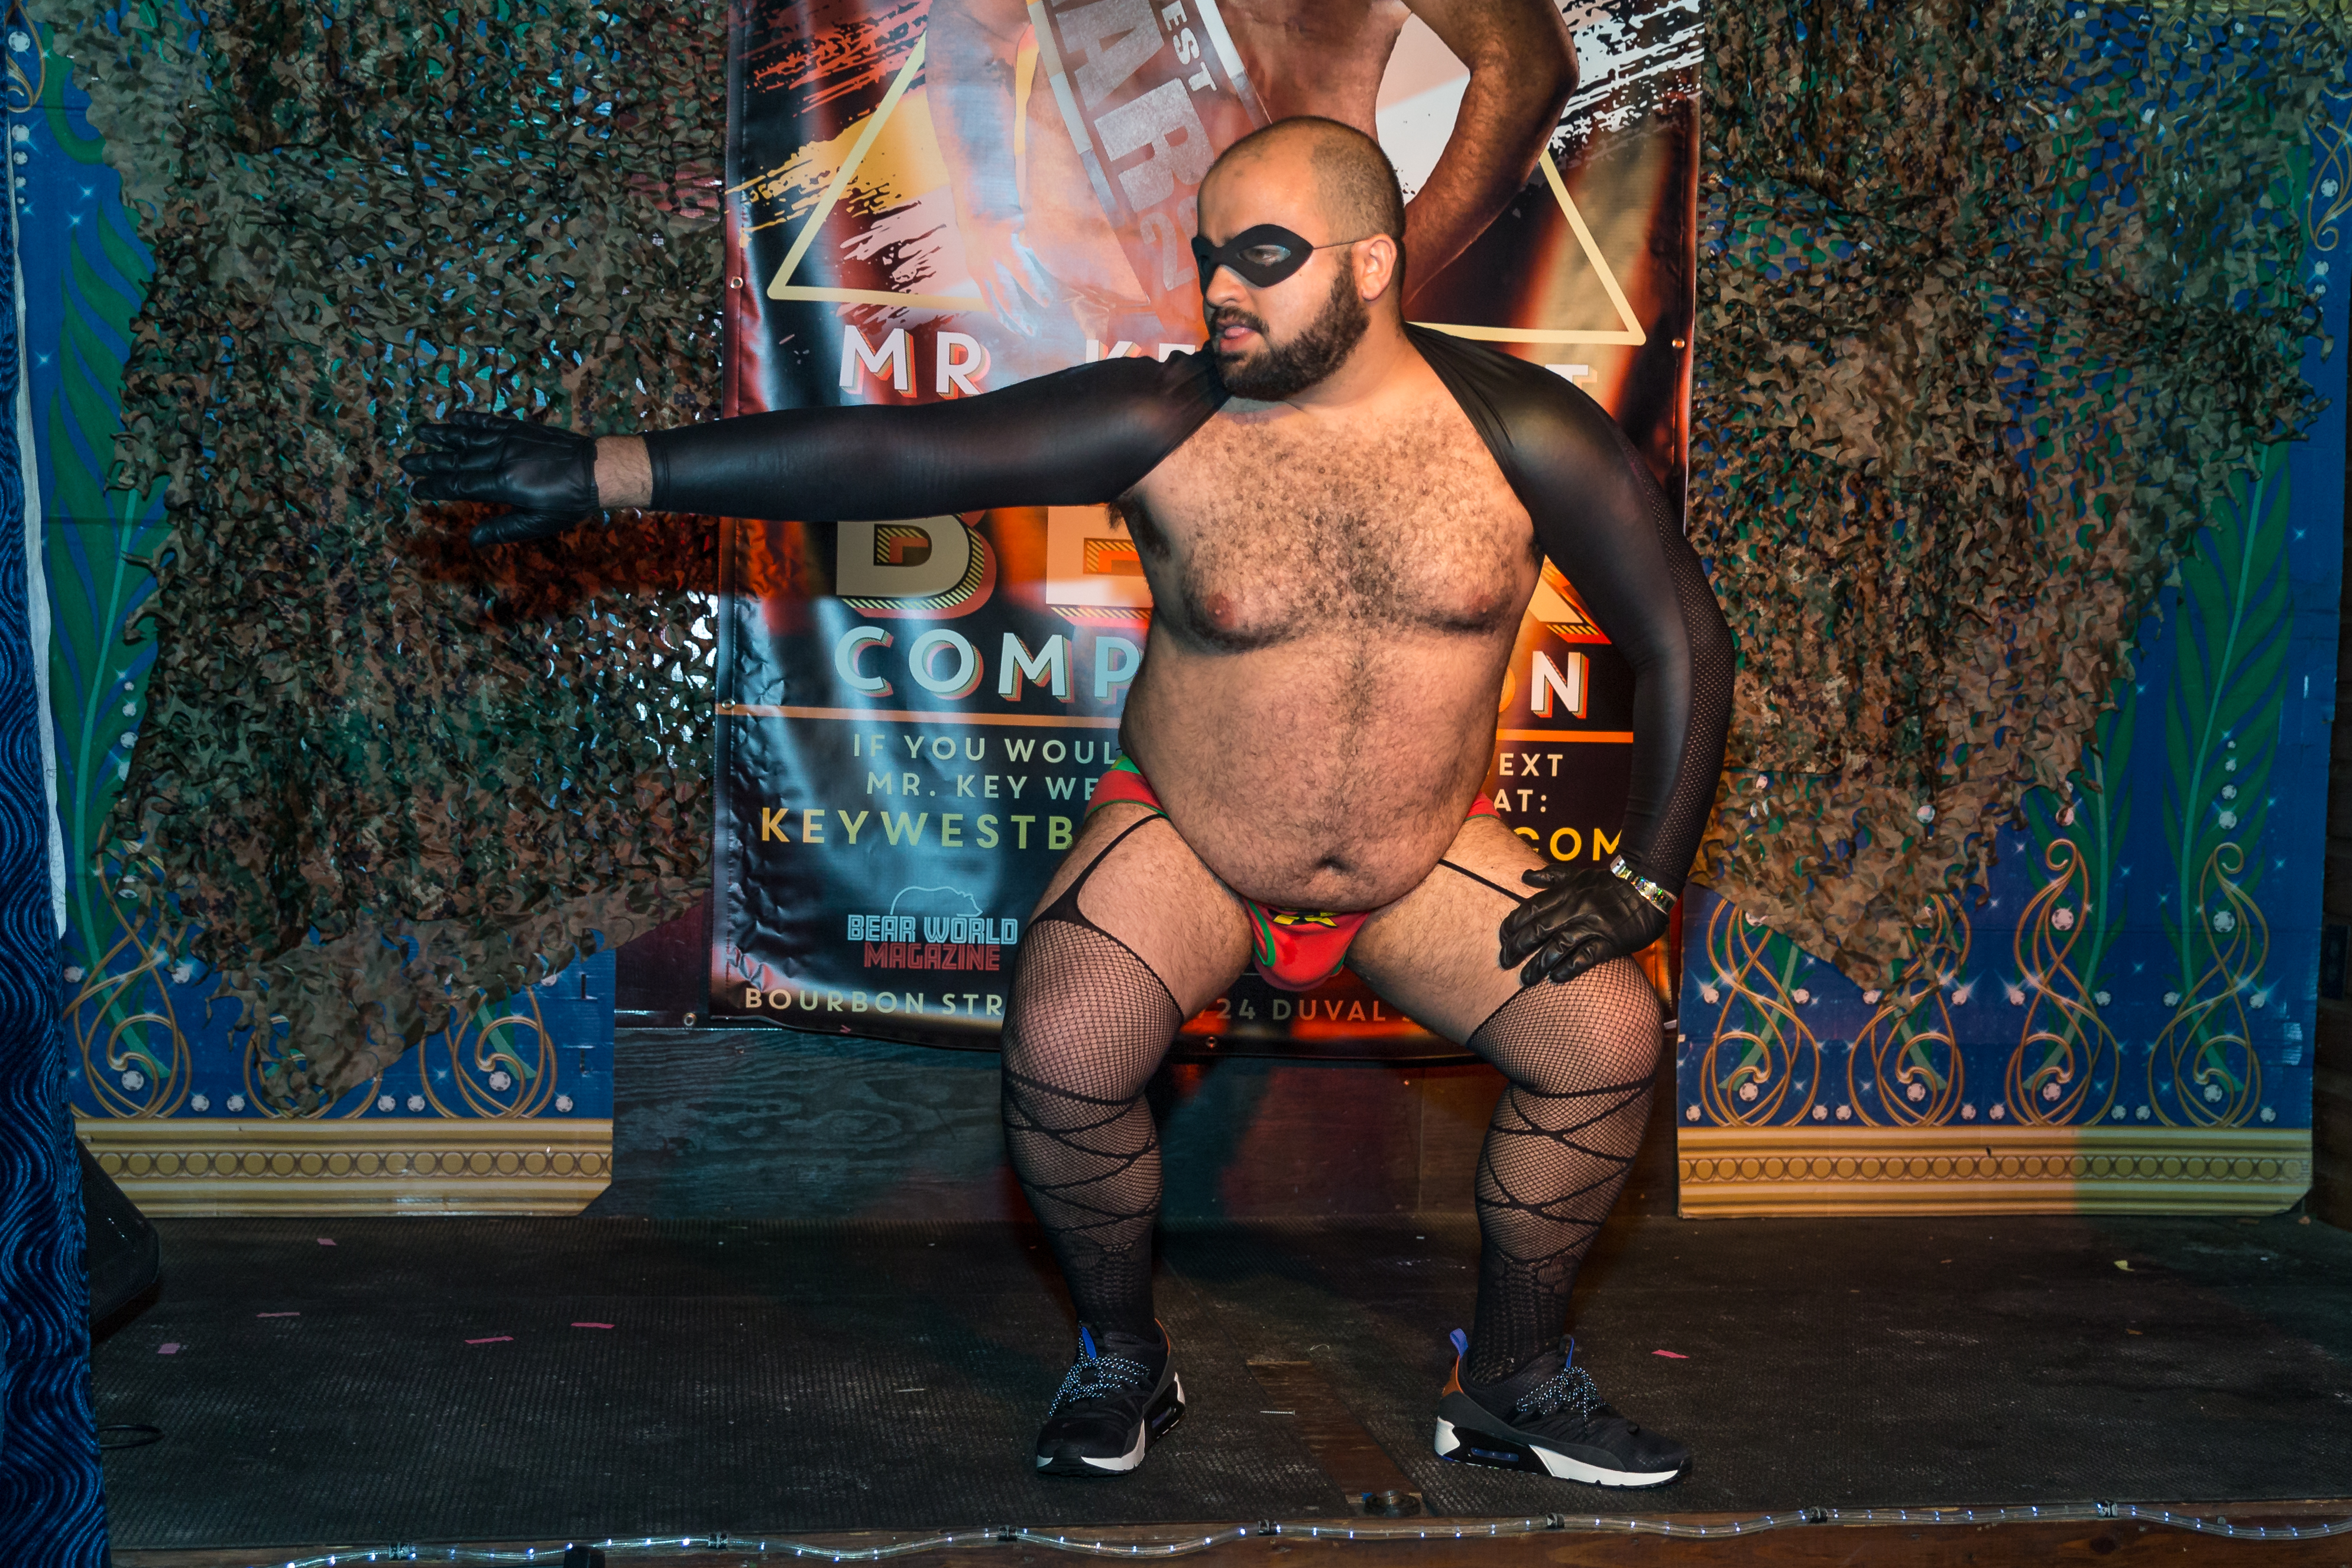 KWBW Mr.Key West Bear 2019 NWM-2304